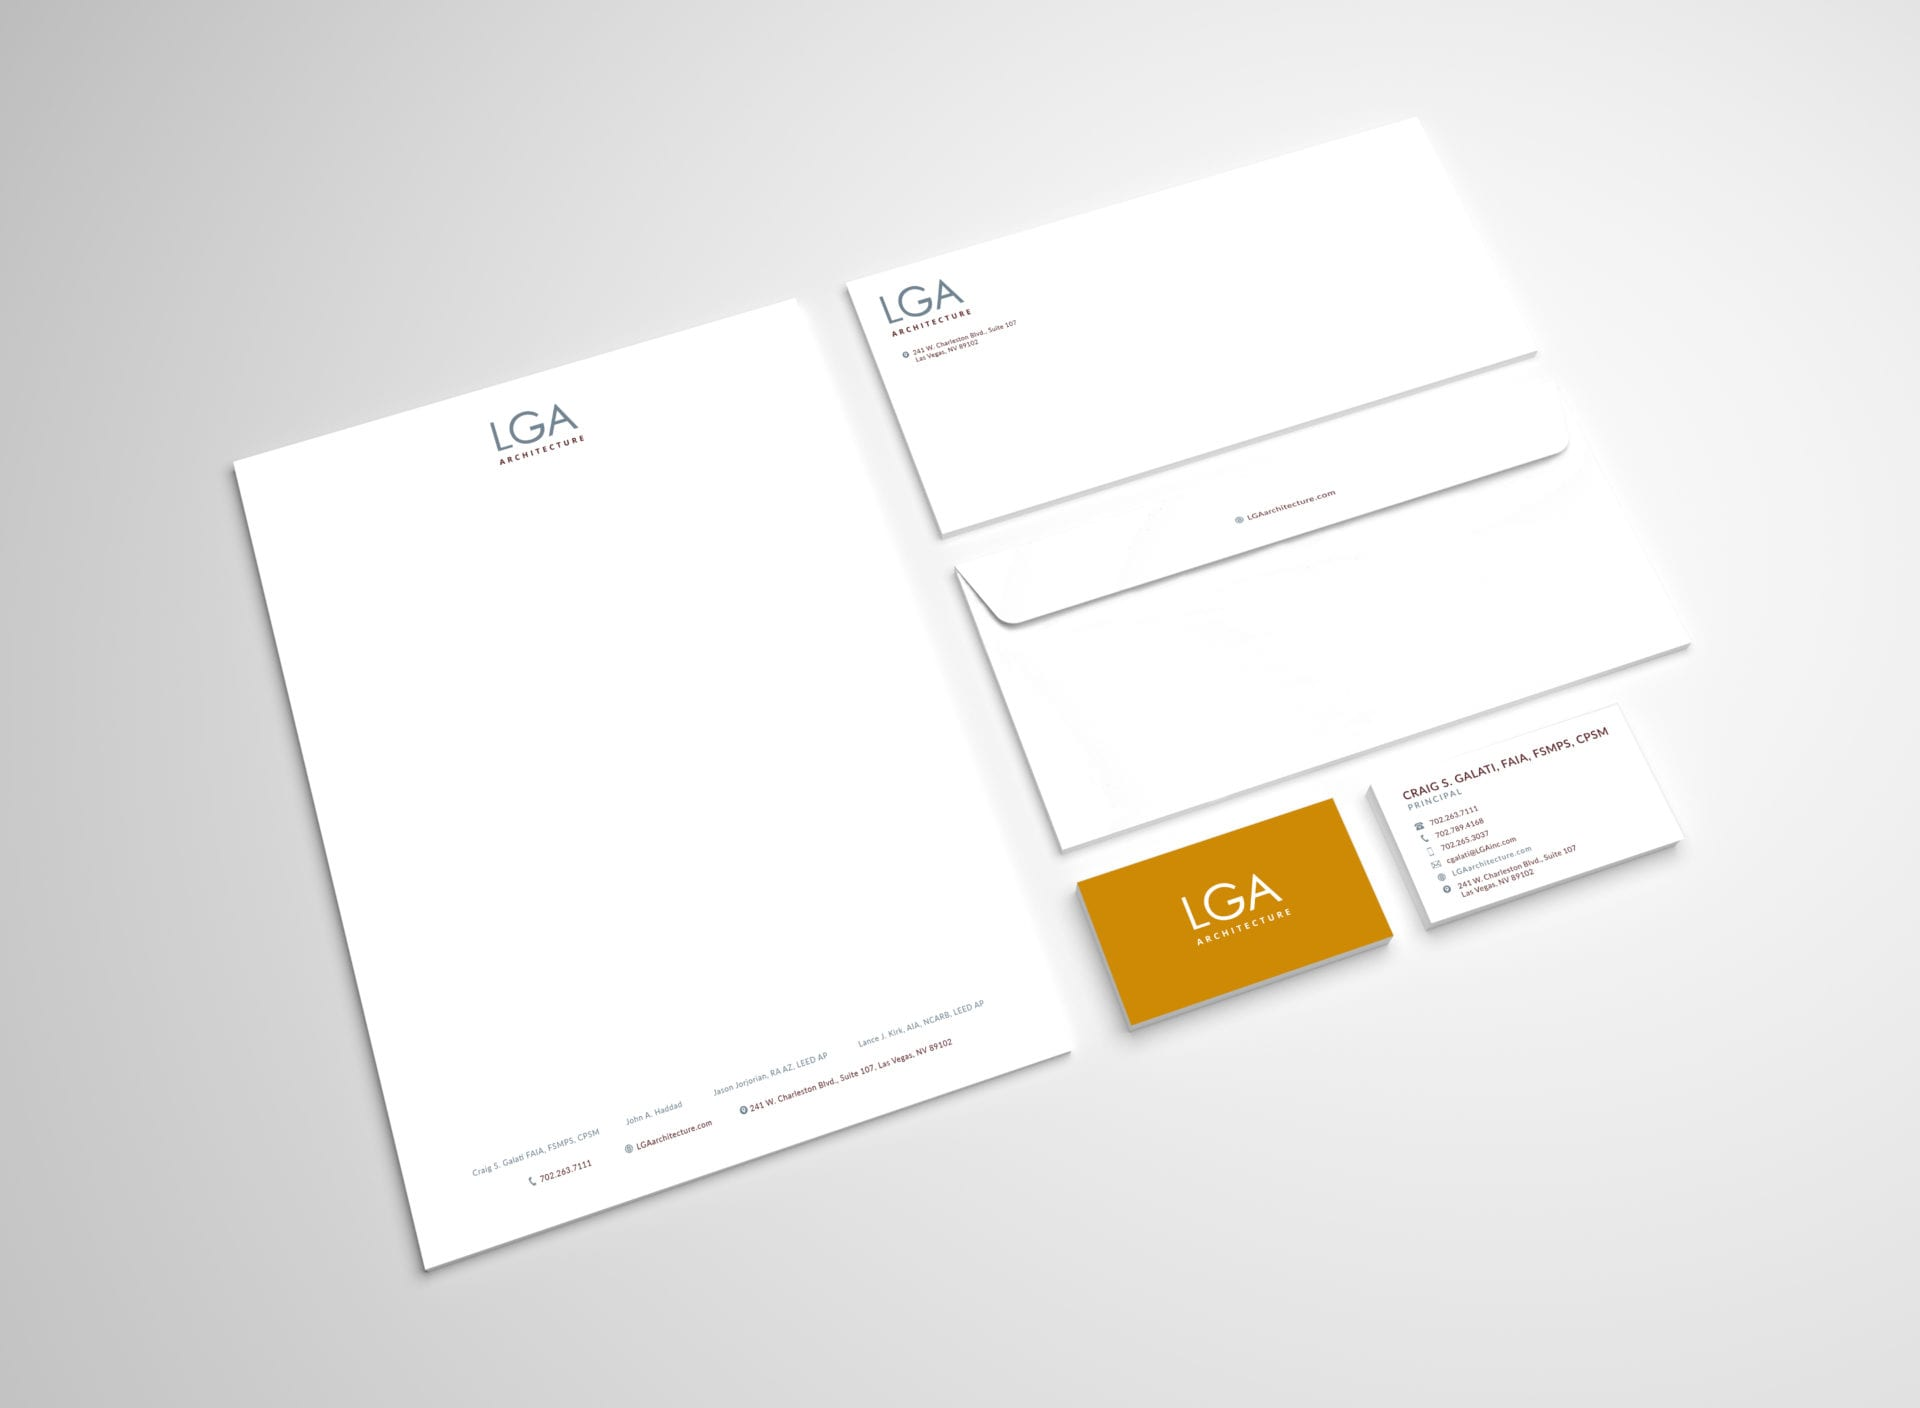 A group of logo stationary for LGA Architecture.